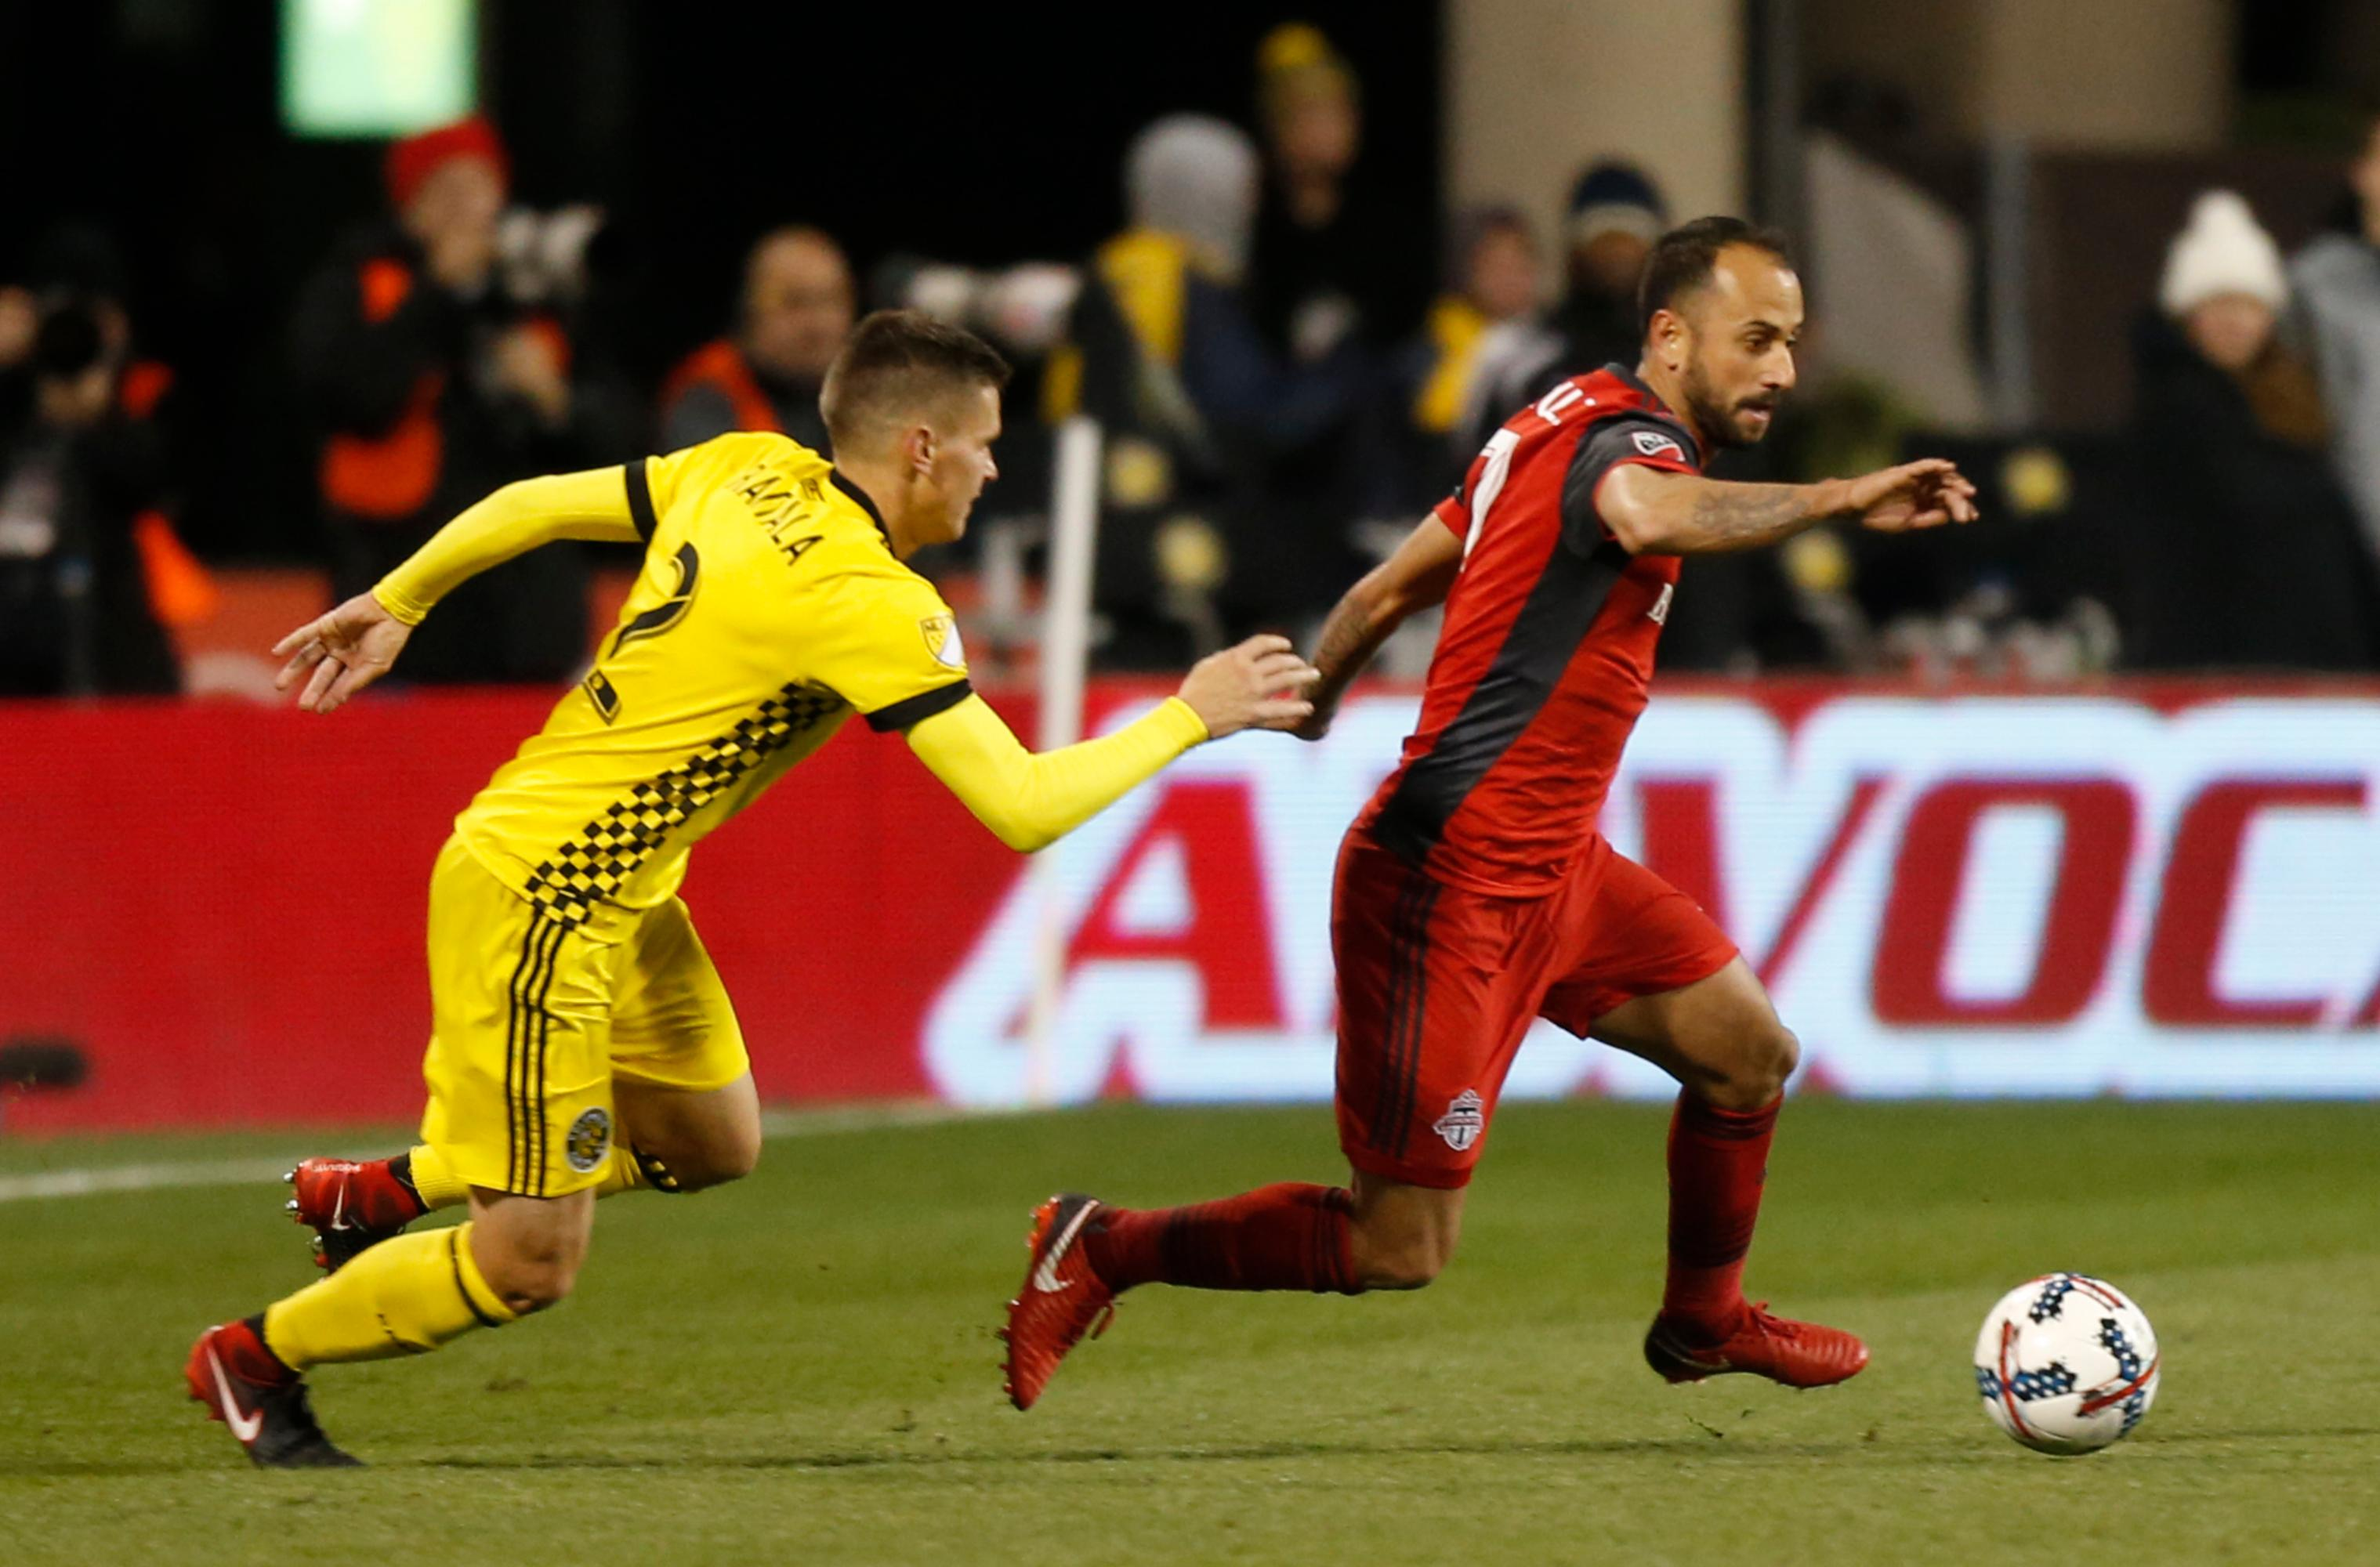 Toronto FC's Victor Vazquez, right, clears the ball past Columbus Crew's Jukka Raitala during the second half of an MLS Eastern Conference championship soccer match Tuesday, Nov. 21, 2017, in Columbus, Ohio. The match ended in a 0-0 tie. (AP Photo/Jay LaPrete)